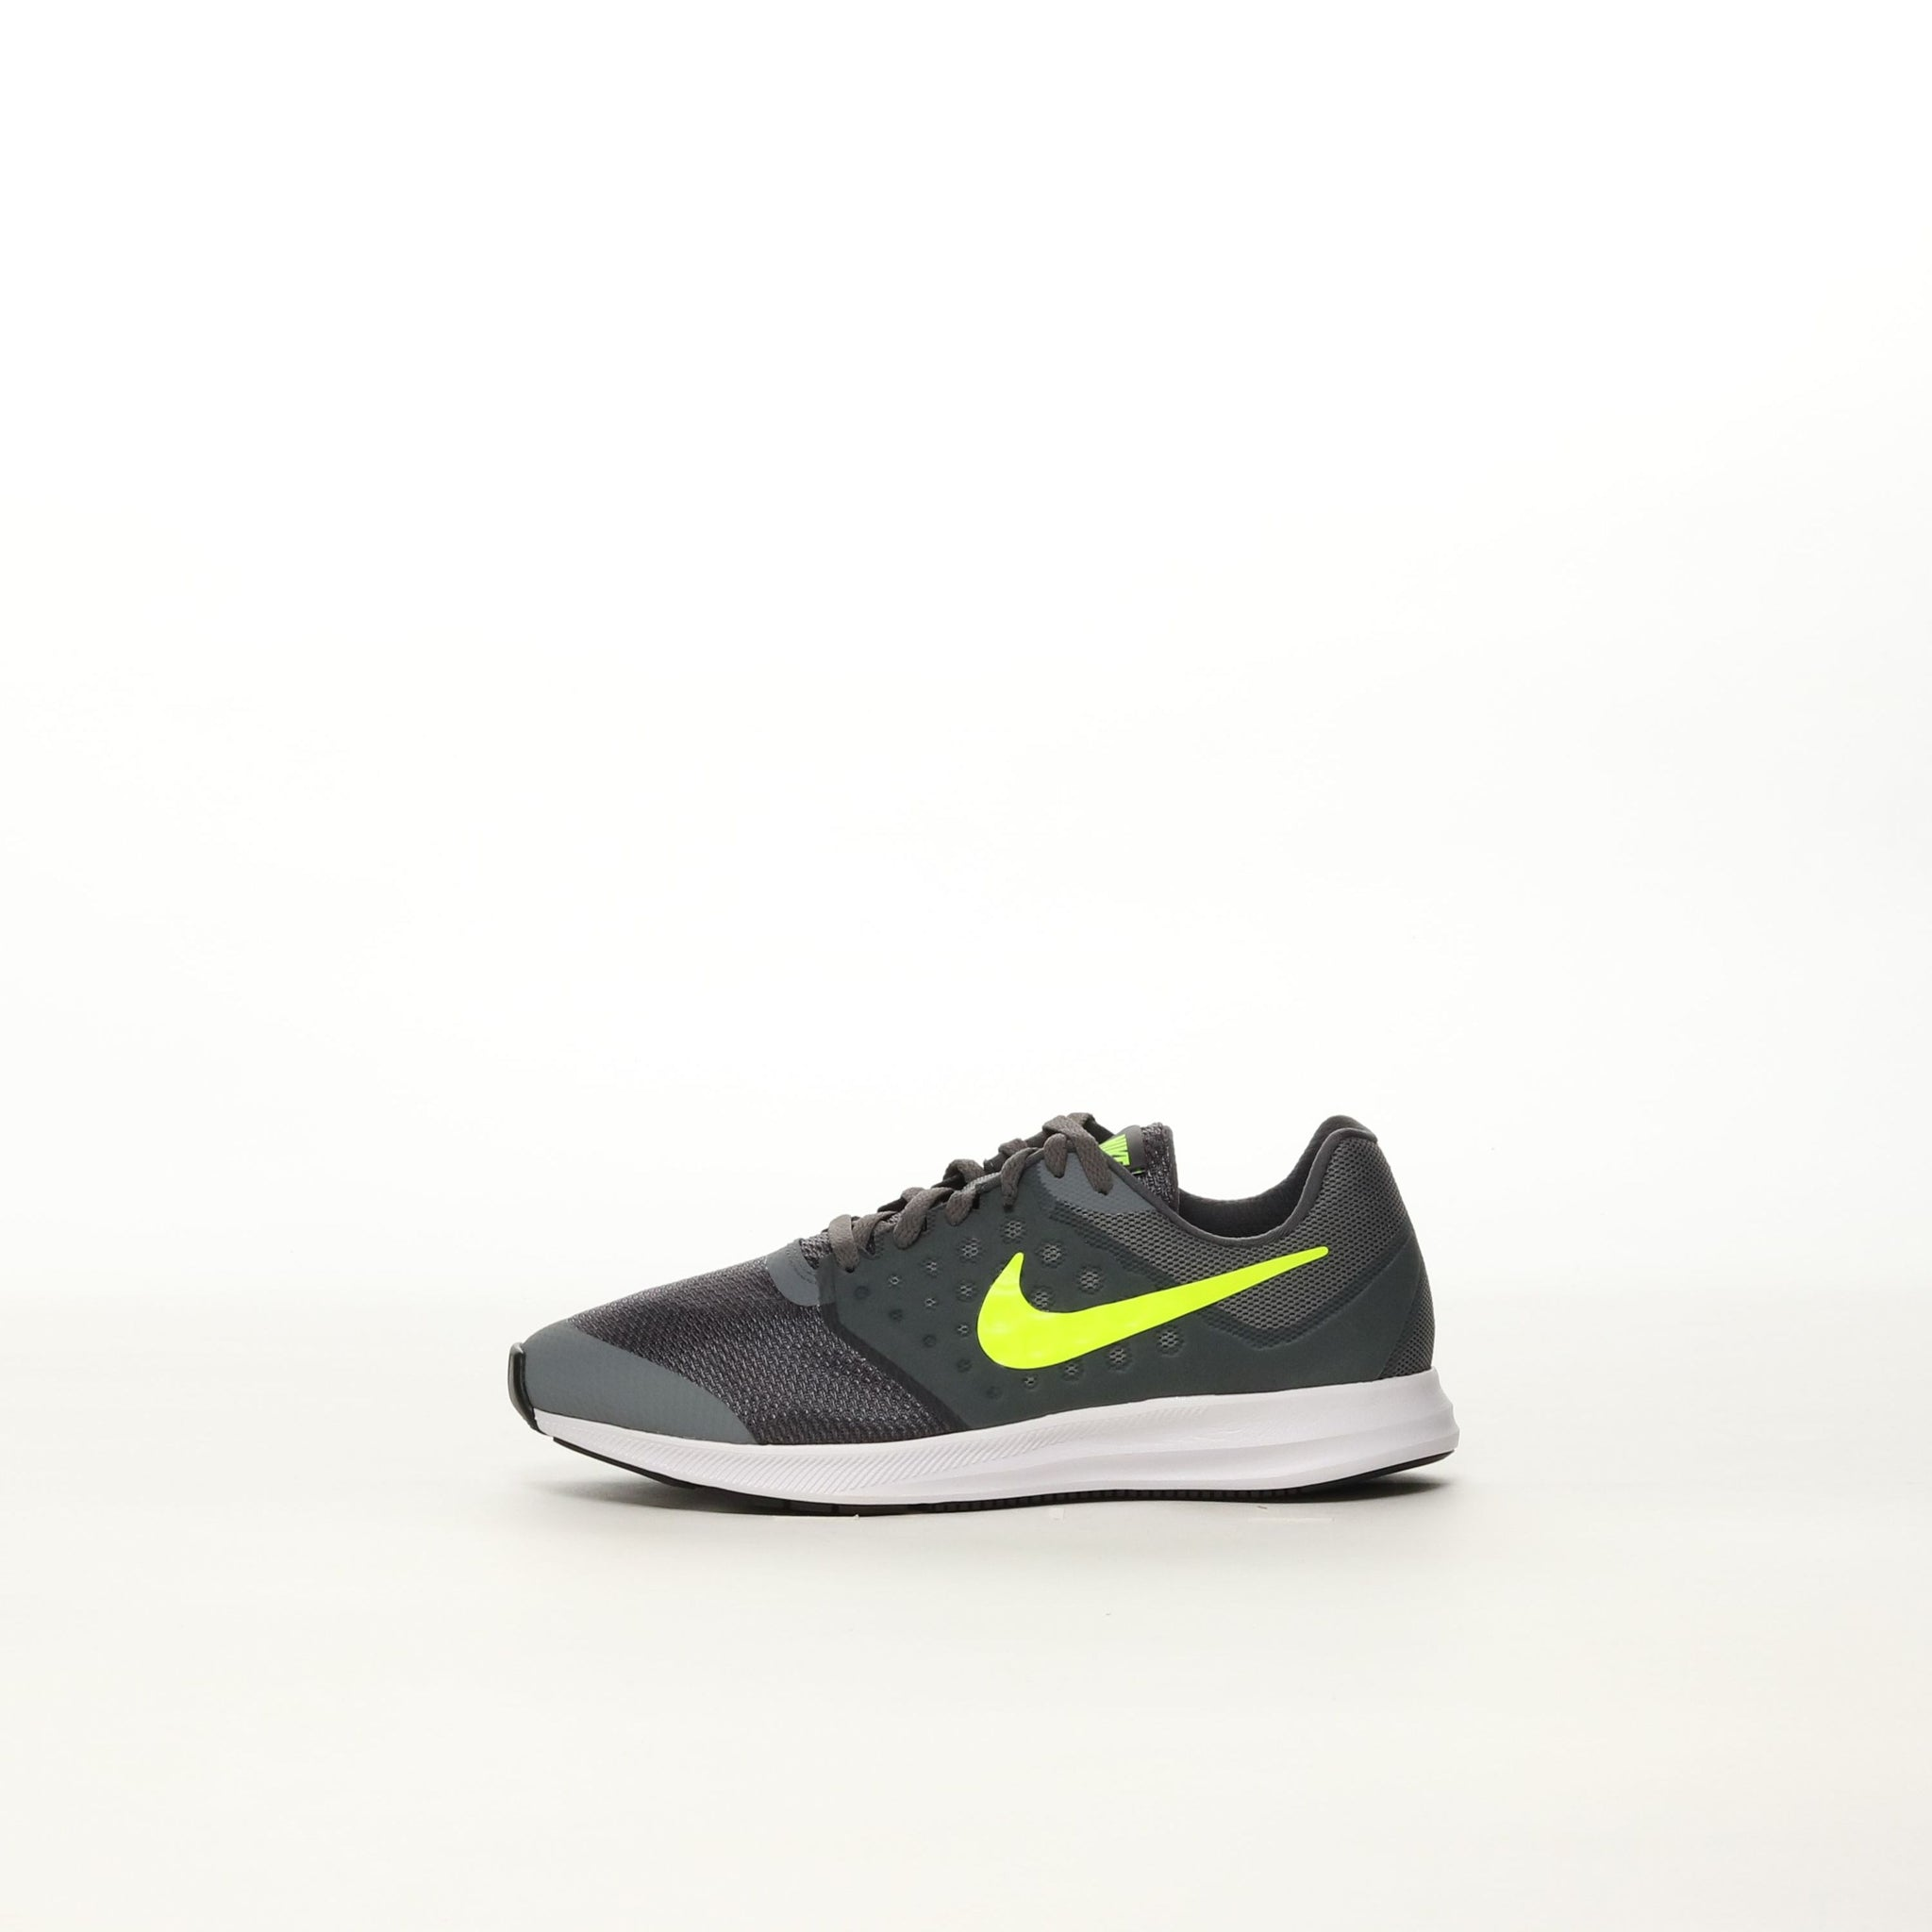 ee87f7e22ba4 Boys  Nike Downshifter 7 Wide (GS) Running Shoe - COL GY VOLT